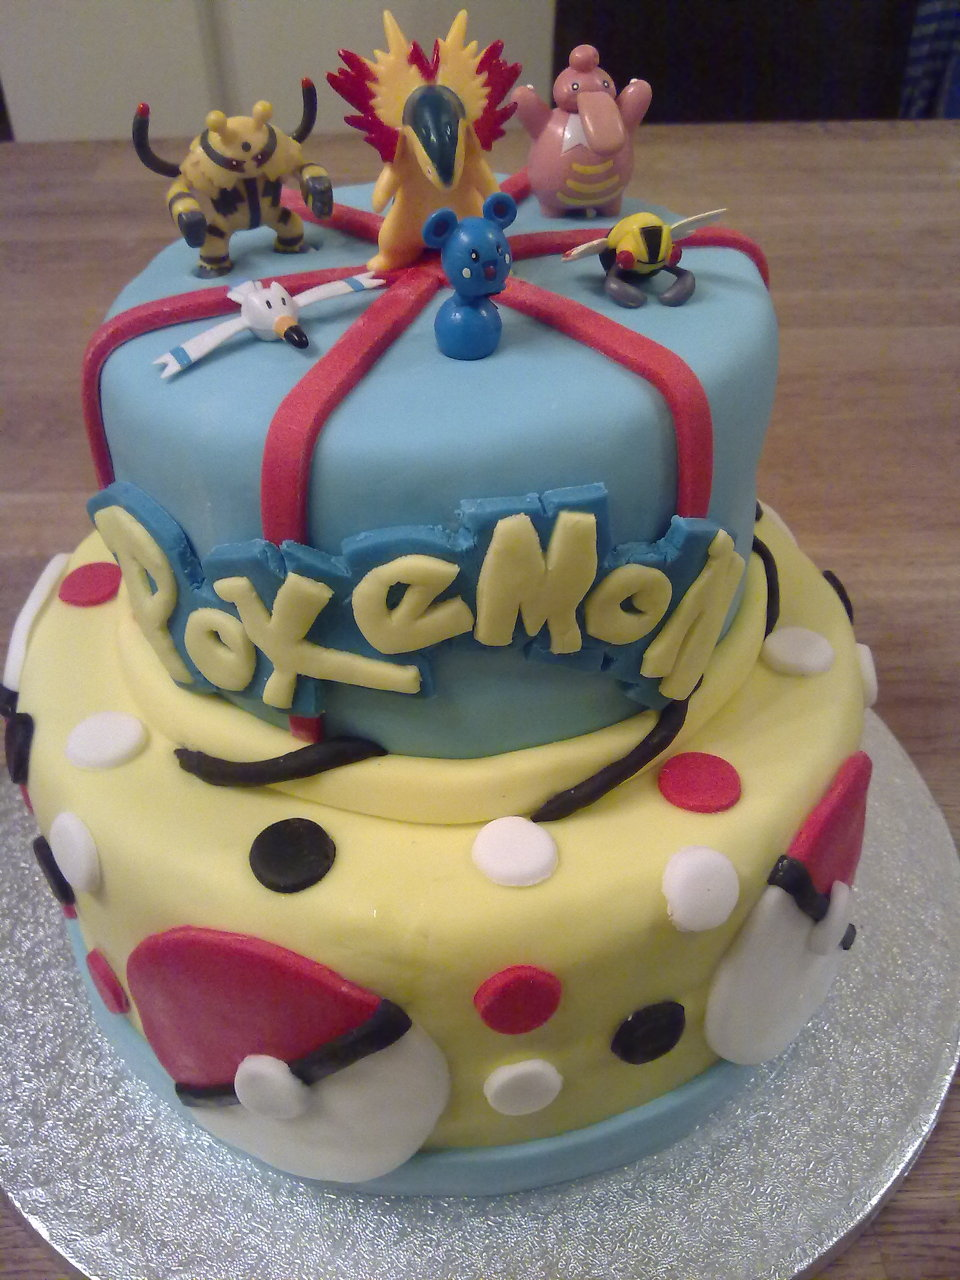 2 tire Pokemon birthday cake